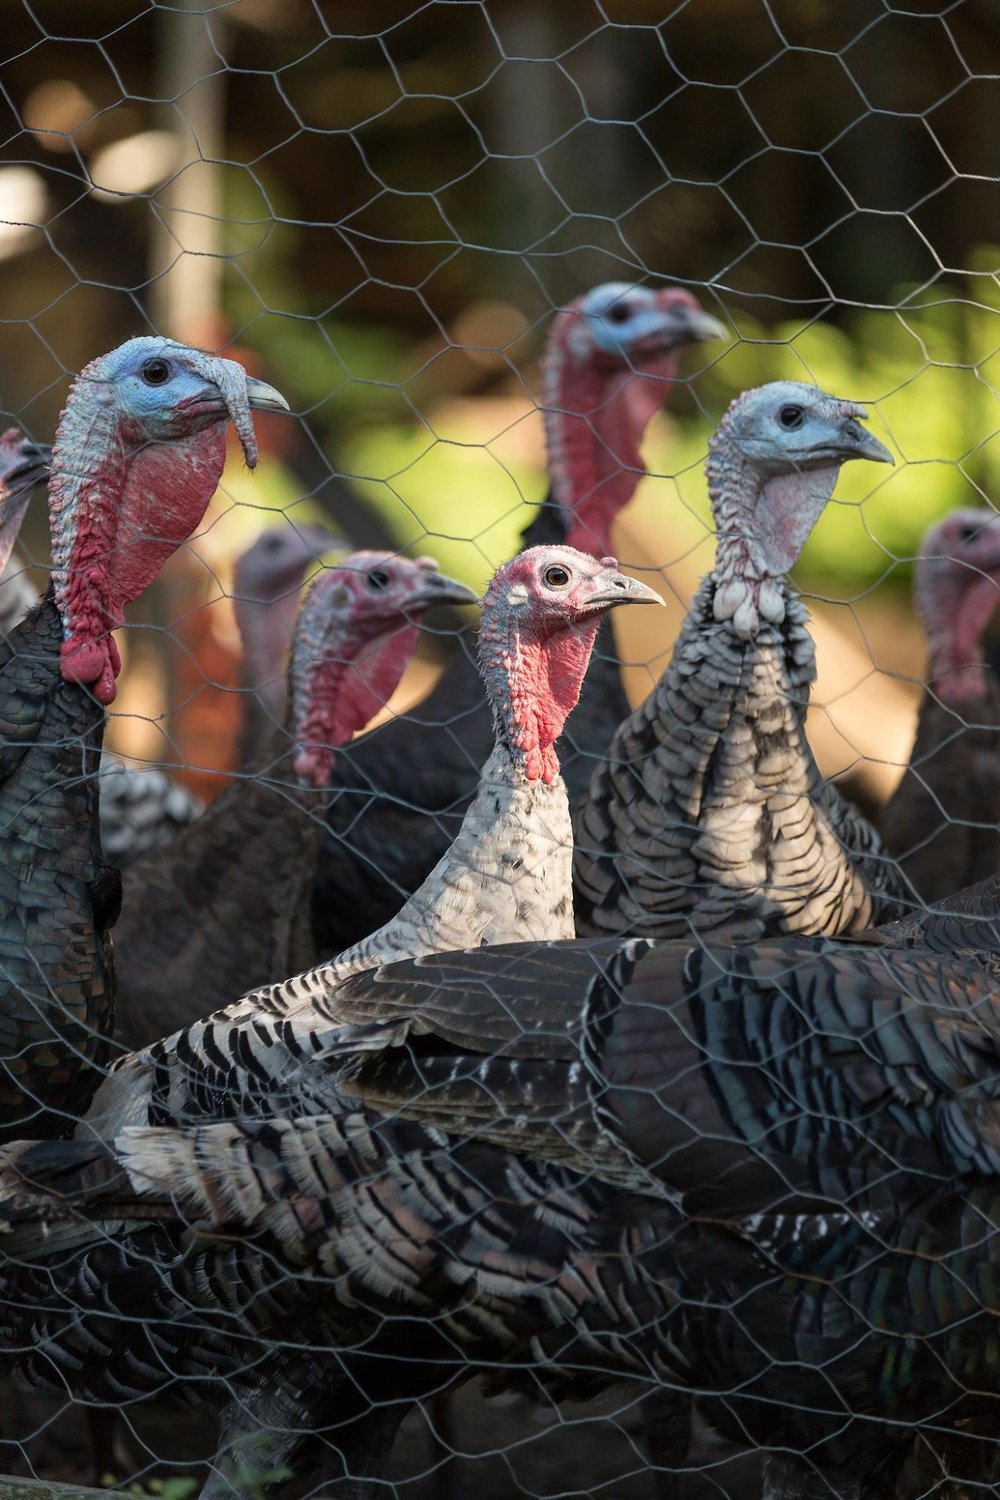 Image by: Oliver Parini   Husband and wife Rick and Elena Hermonot are co-owners of Ekonk Hill Turkey Farm, LLC located in Moosup, CT.  In 1998, they raised 15 turkeys for family and friends and have grown to 2,800 pasture-raised turkeys today.  They are the largest grower of pasture-raised turkeys in Connecticut.